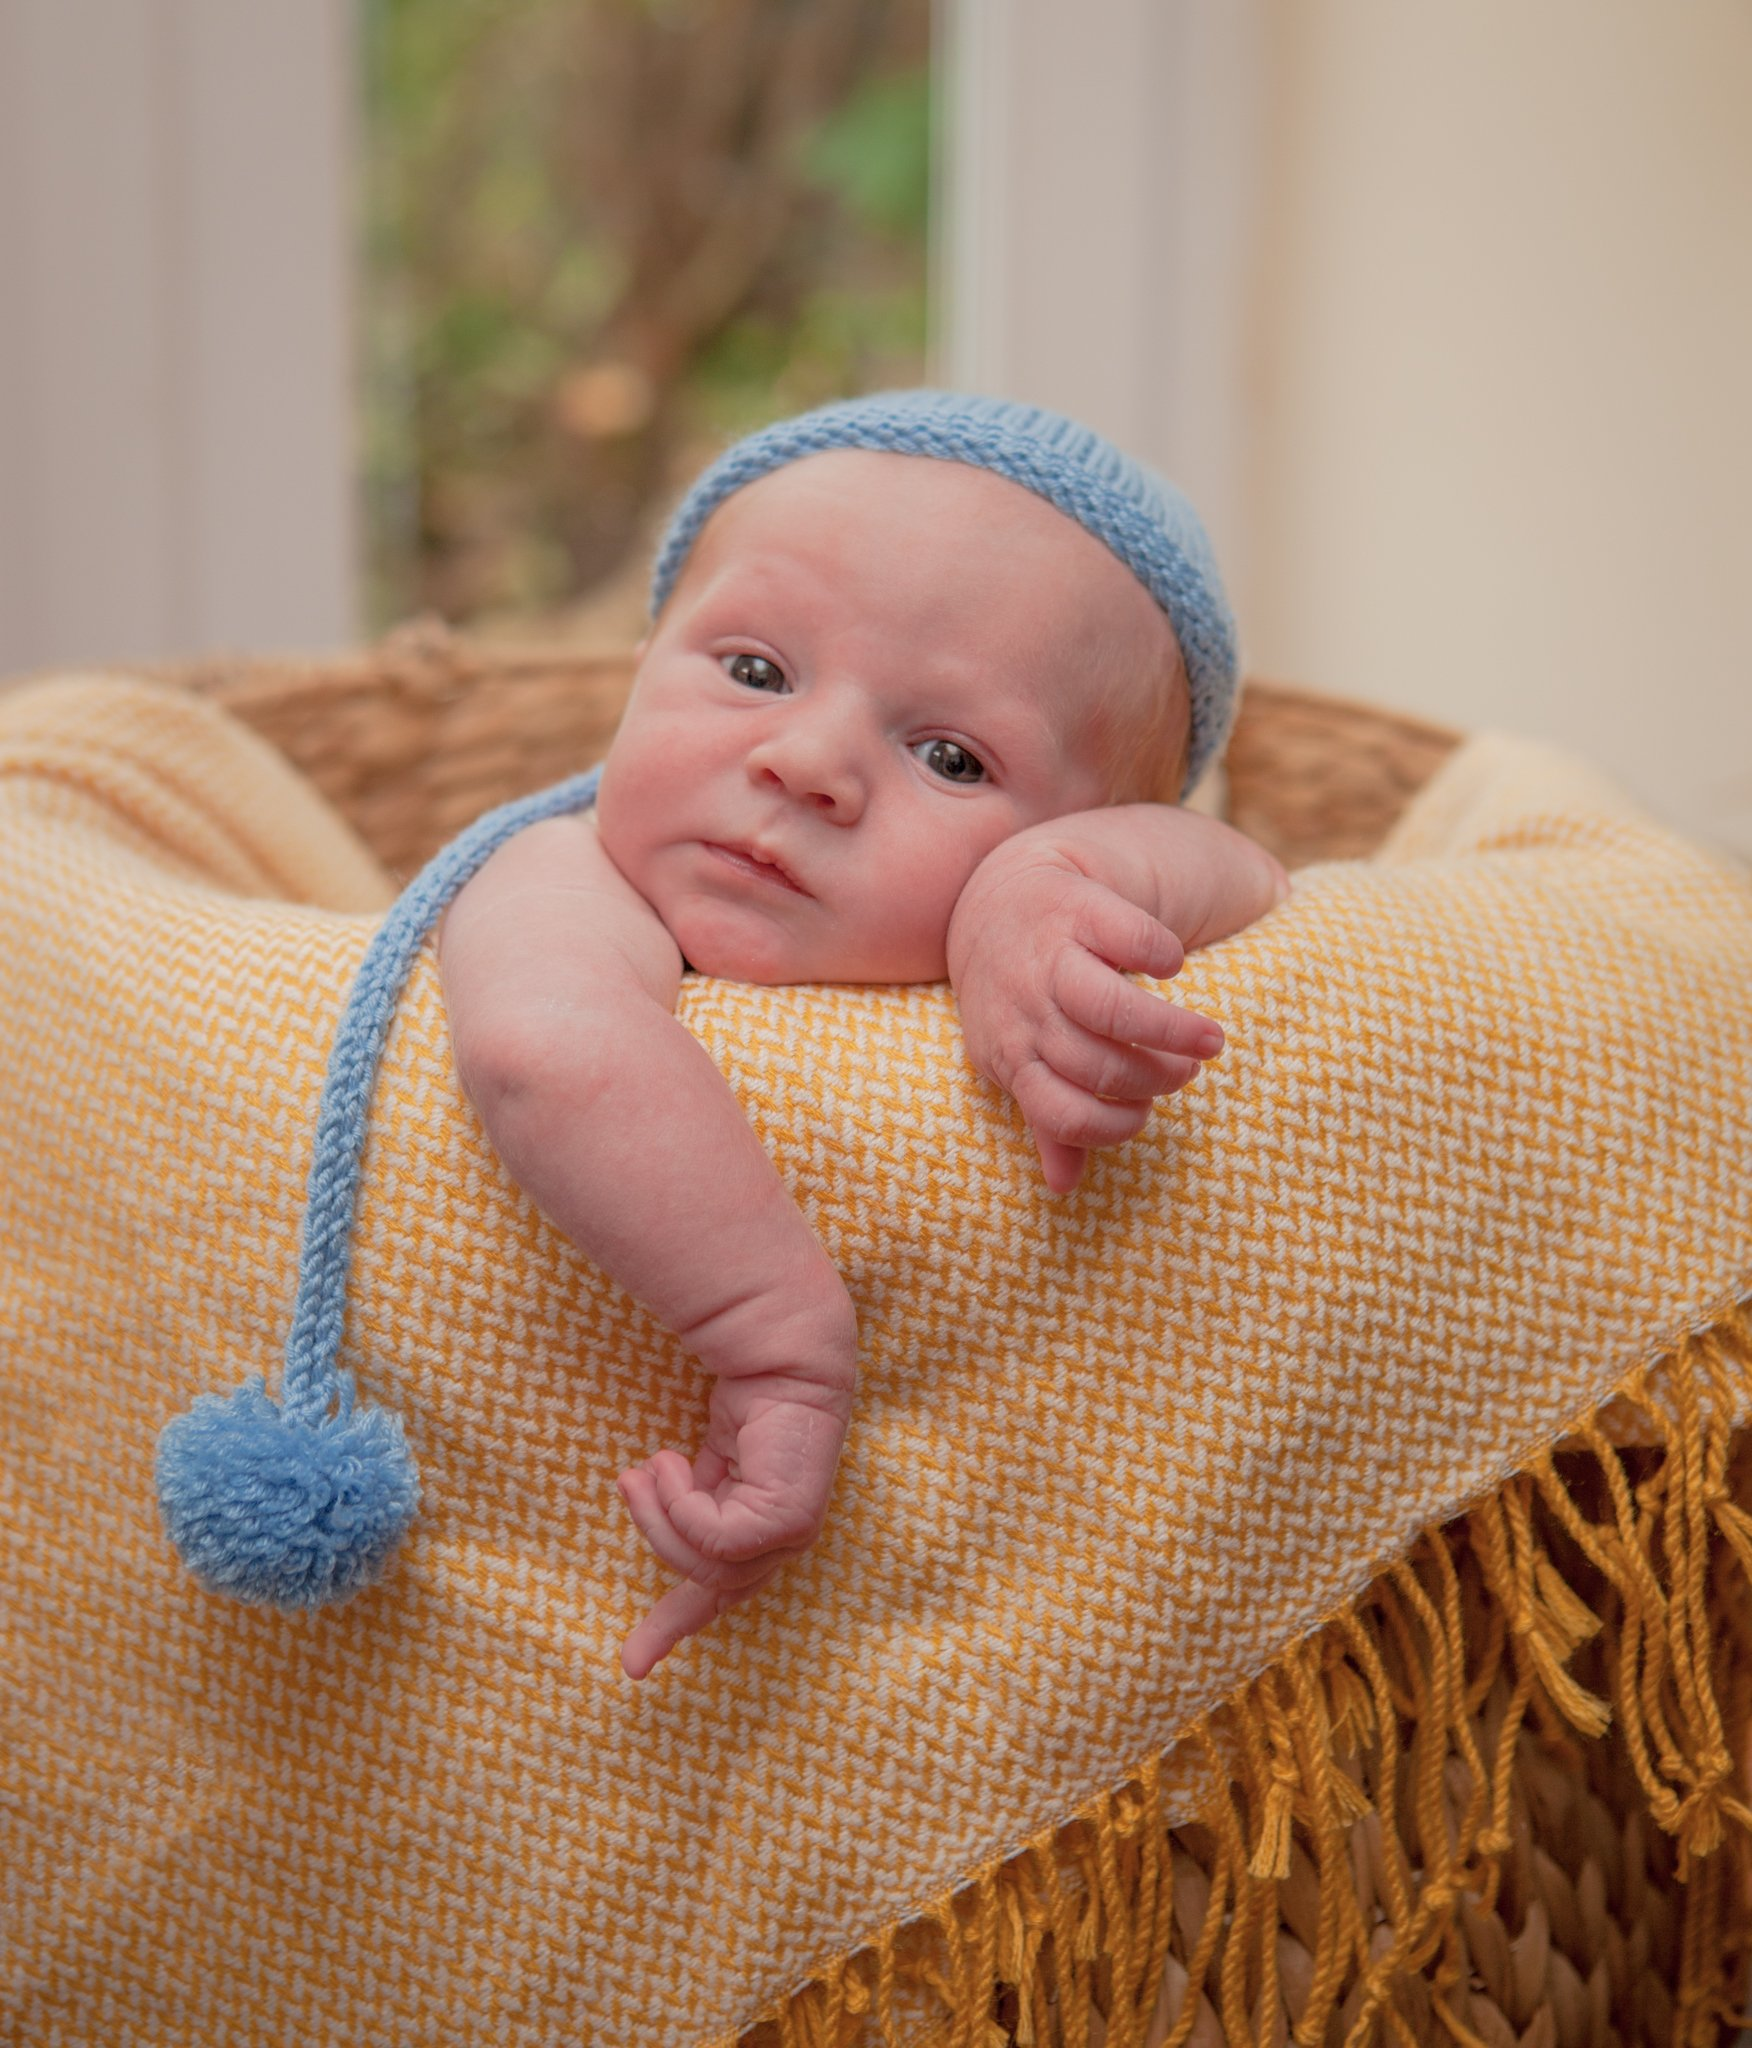 newborn photographer, Tania Miller Photography, baby boy, Abergavenny newborn photographer